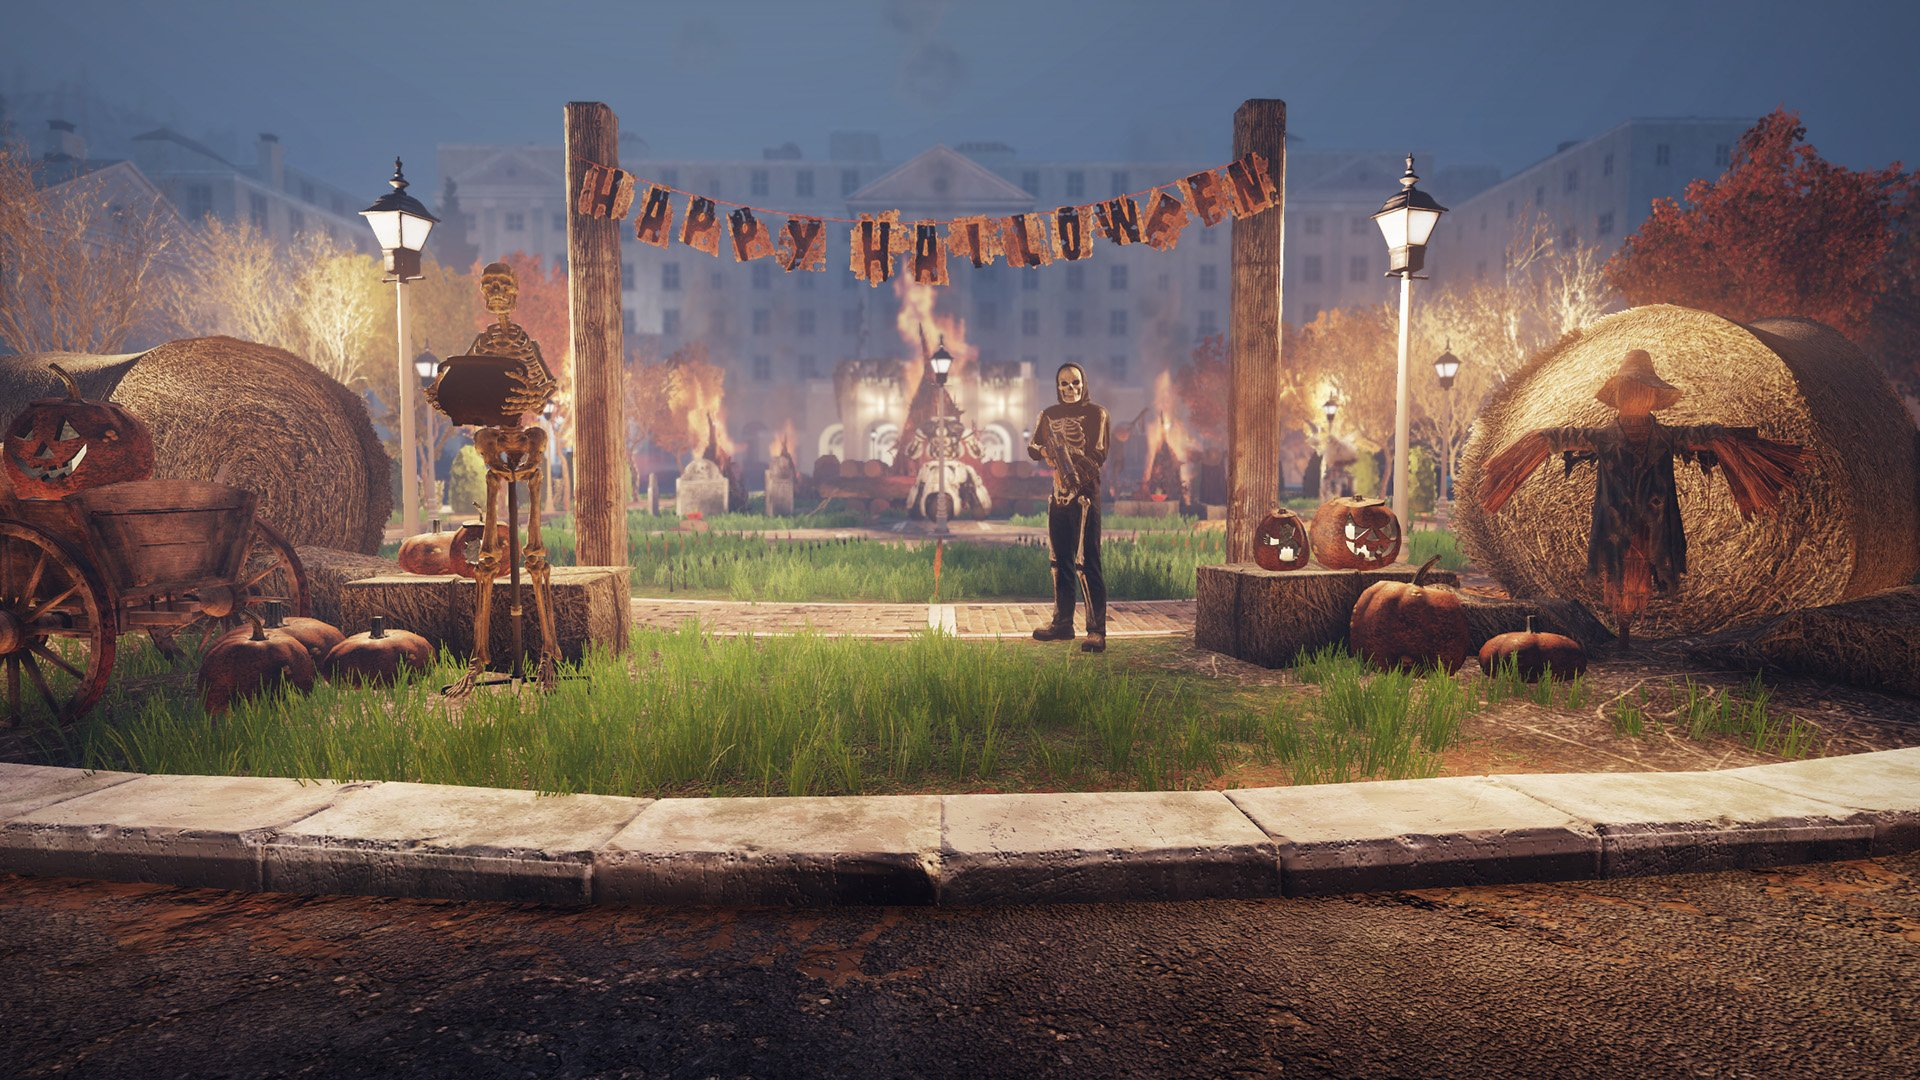 The next Fallout 76 event is Halloween related, please clap